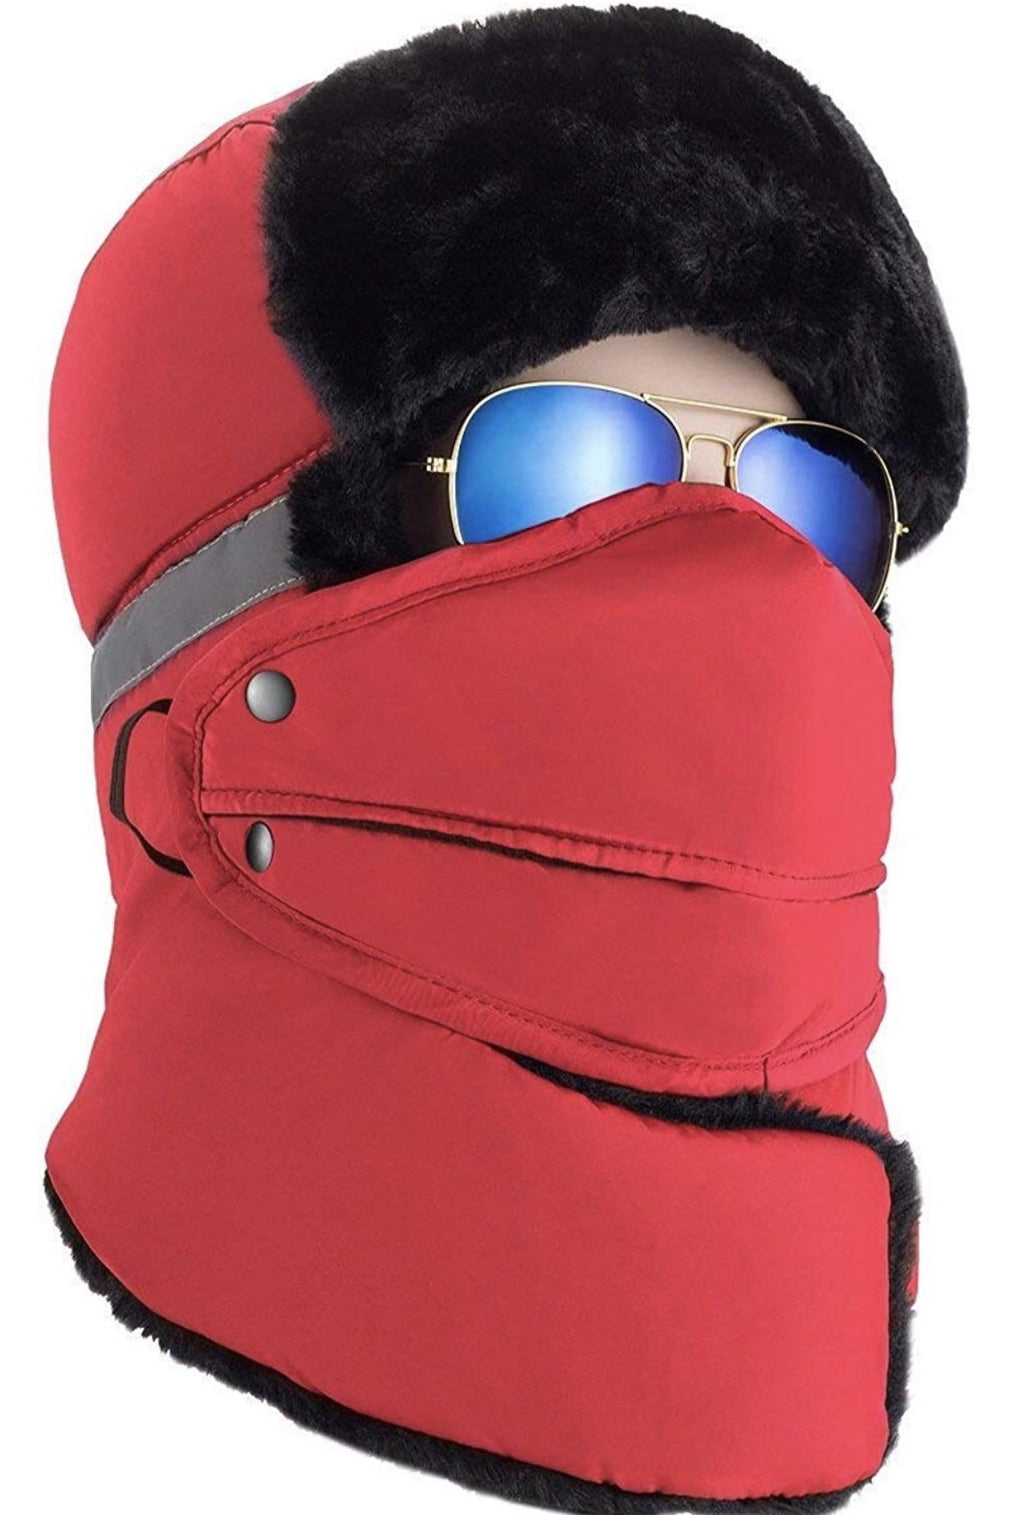 Winter Warm Trapper Hat with Neck Warmer and Mask